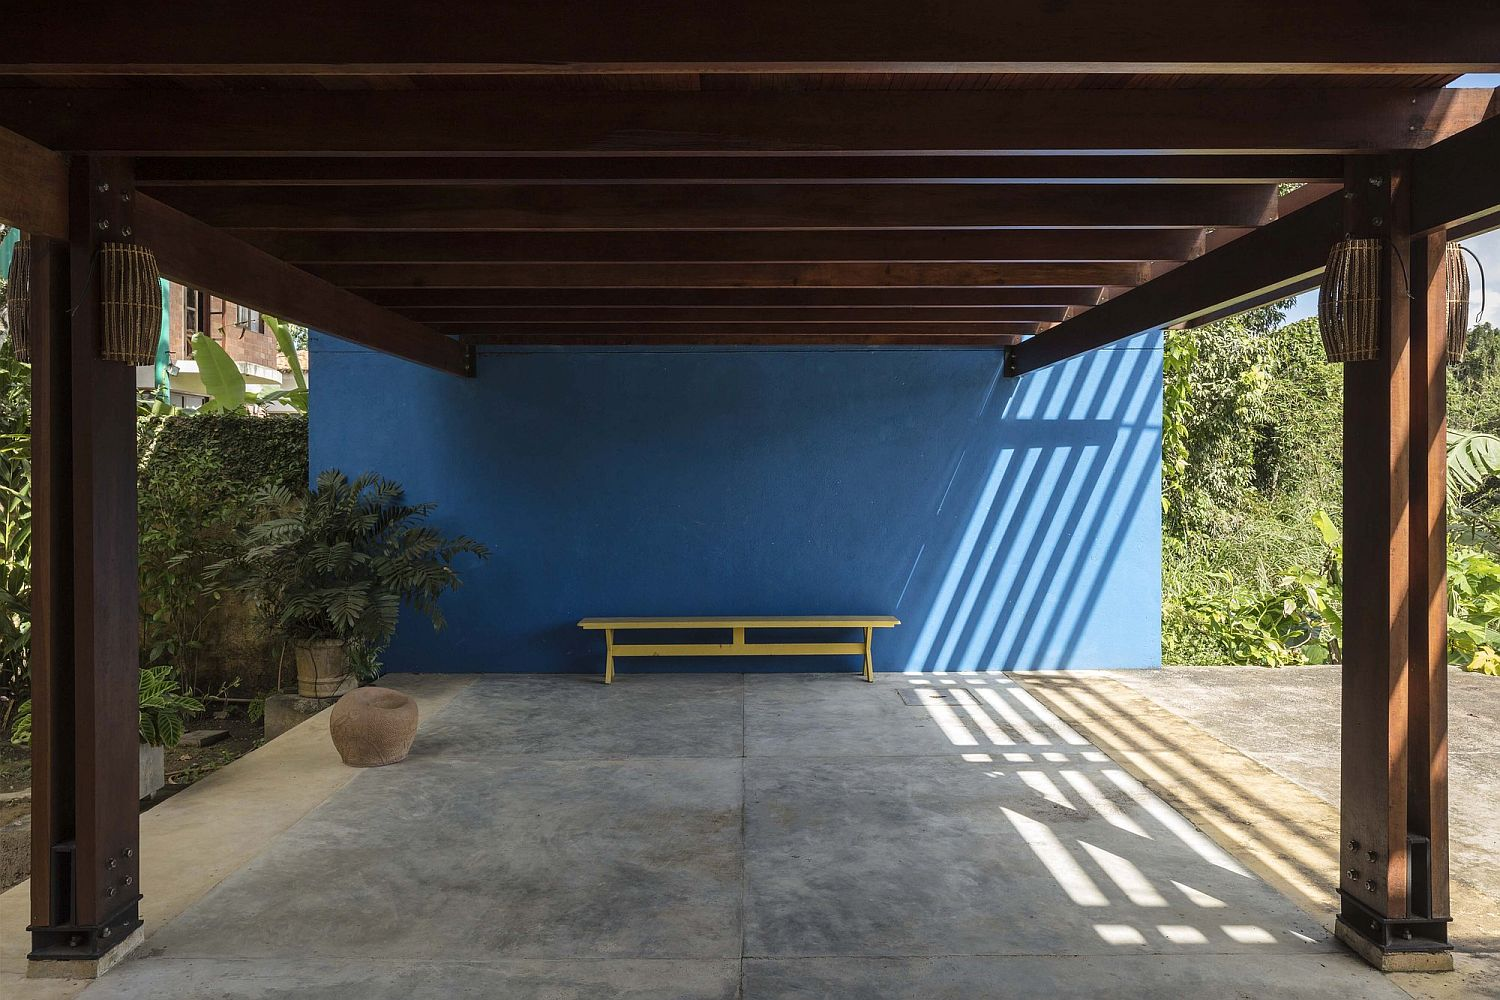 Pergola-structure-offers-shade-to-those-inside